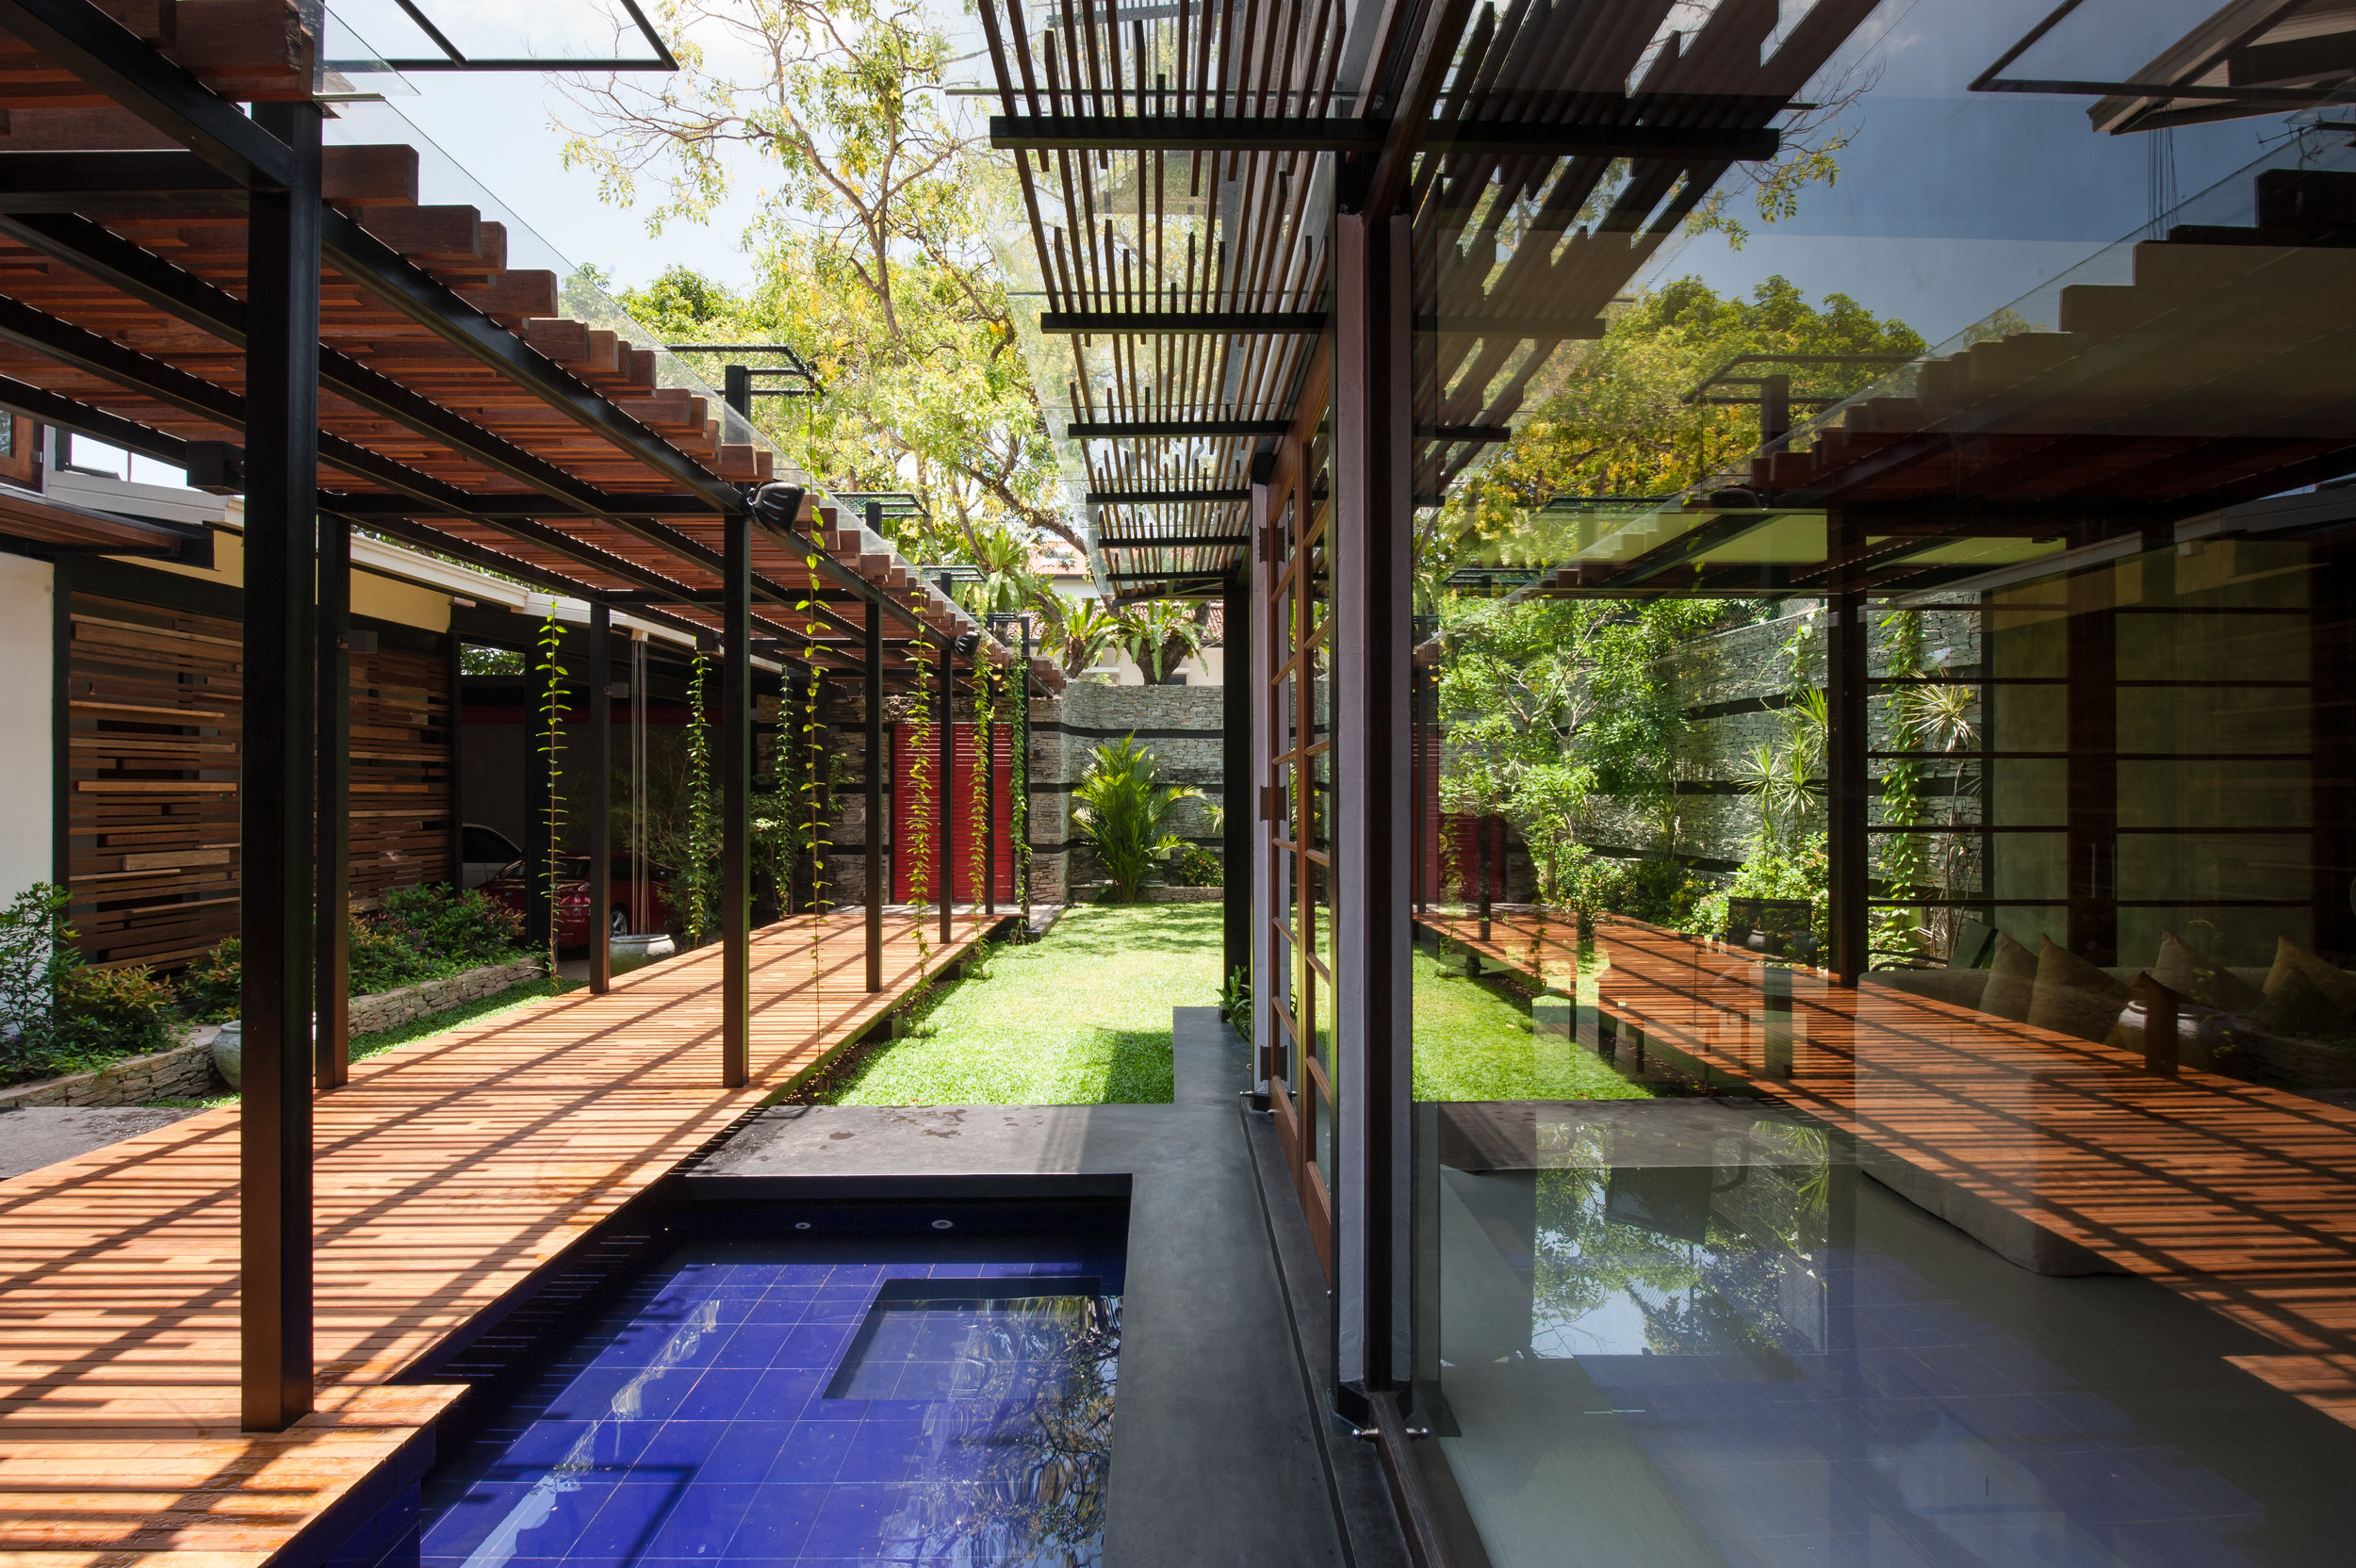 House No. 8 - pool and reflections